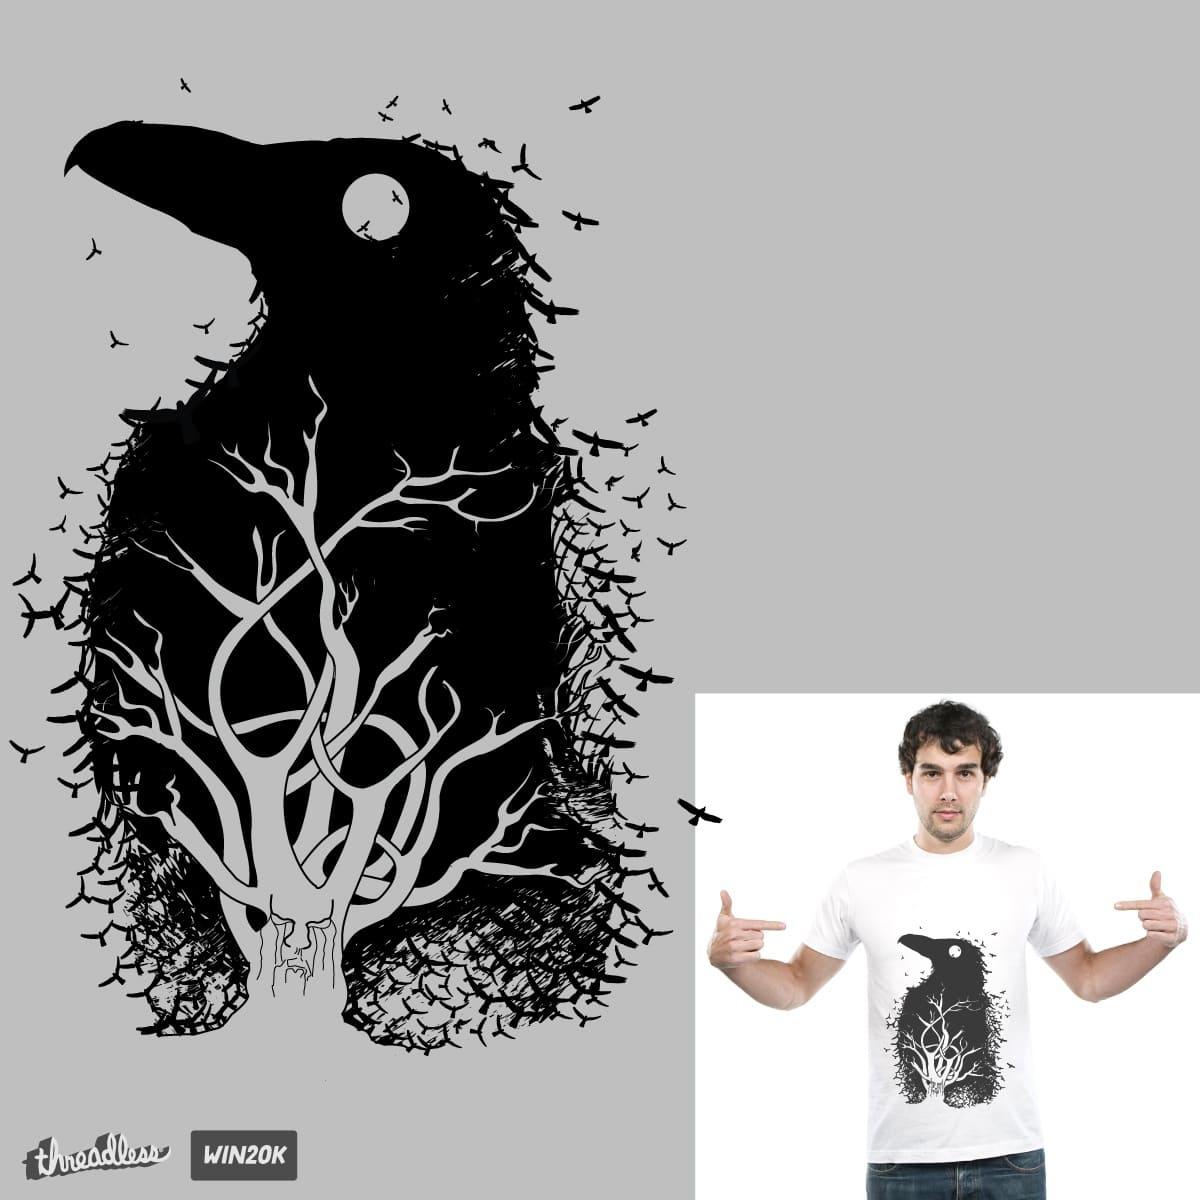 Raven Tree by natarajan_dinesh and alaxander78 on Threadless